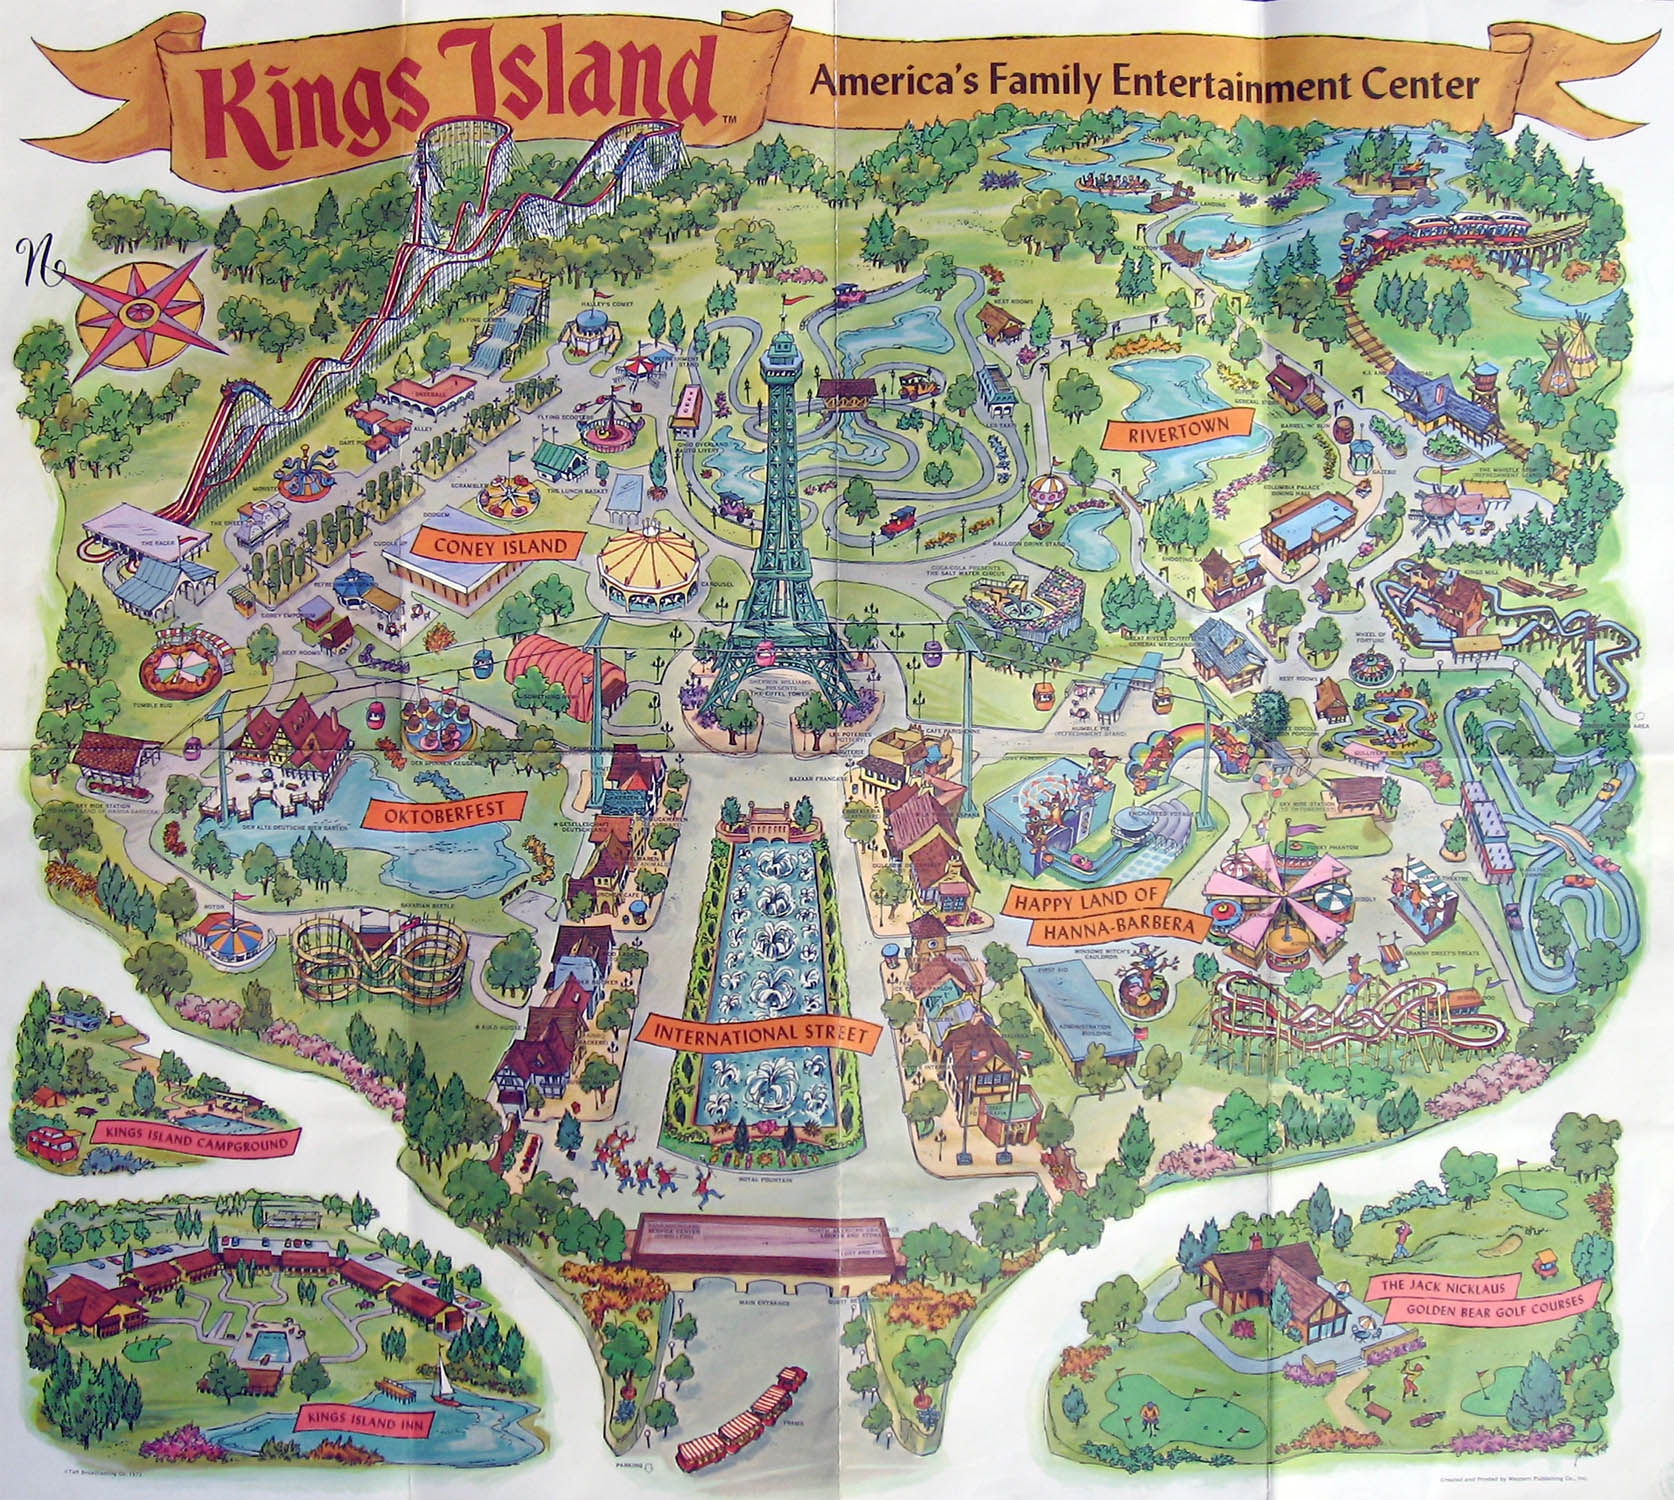 Kings Island, click for larger image